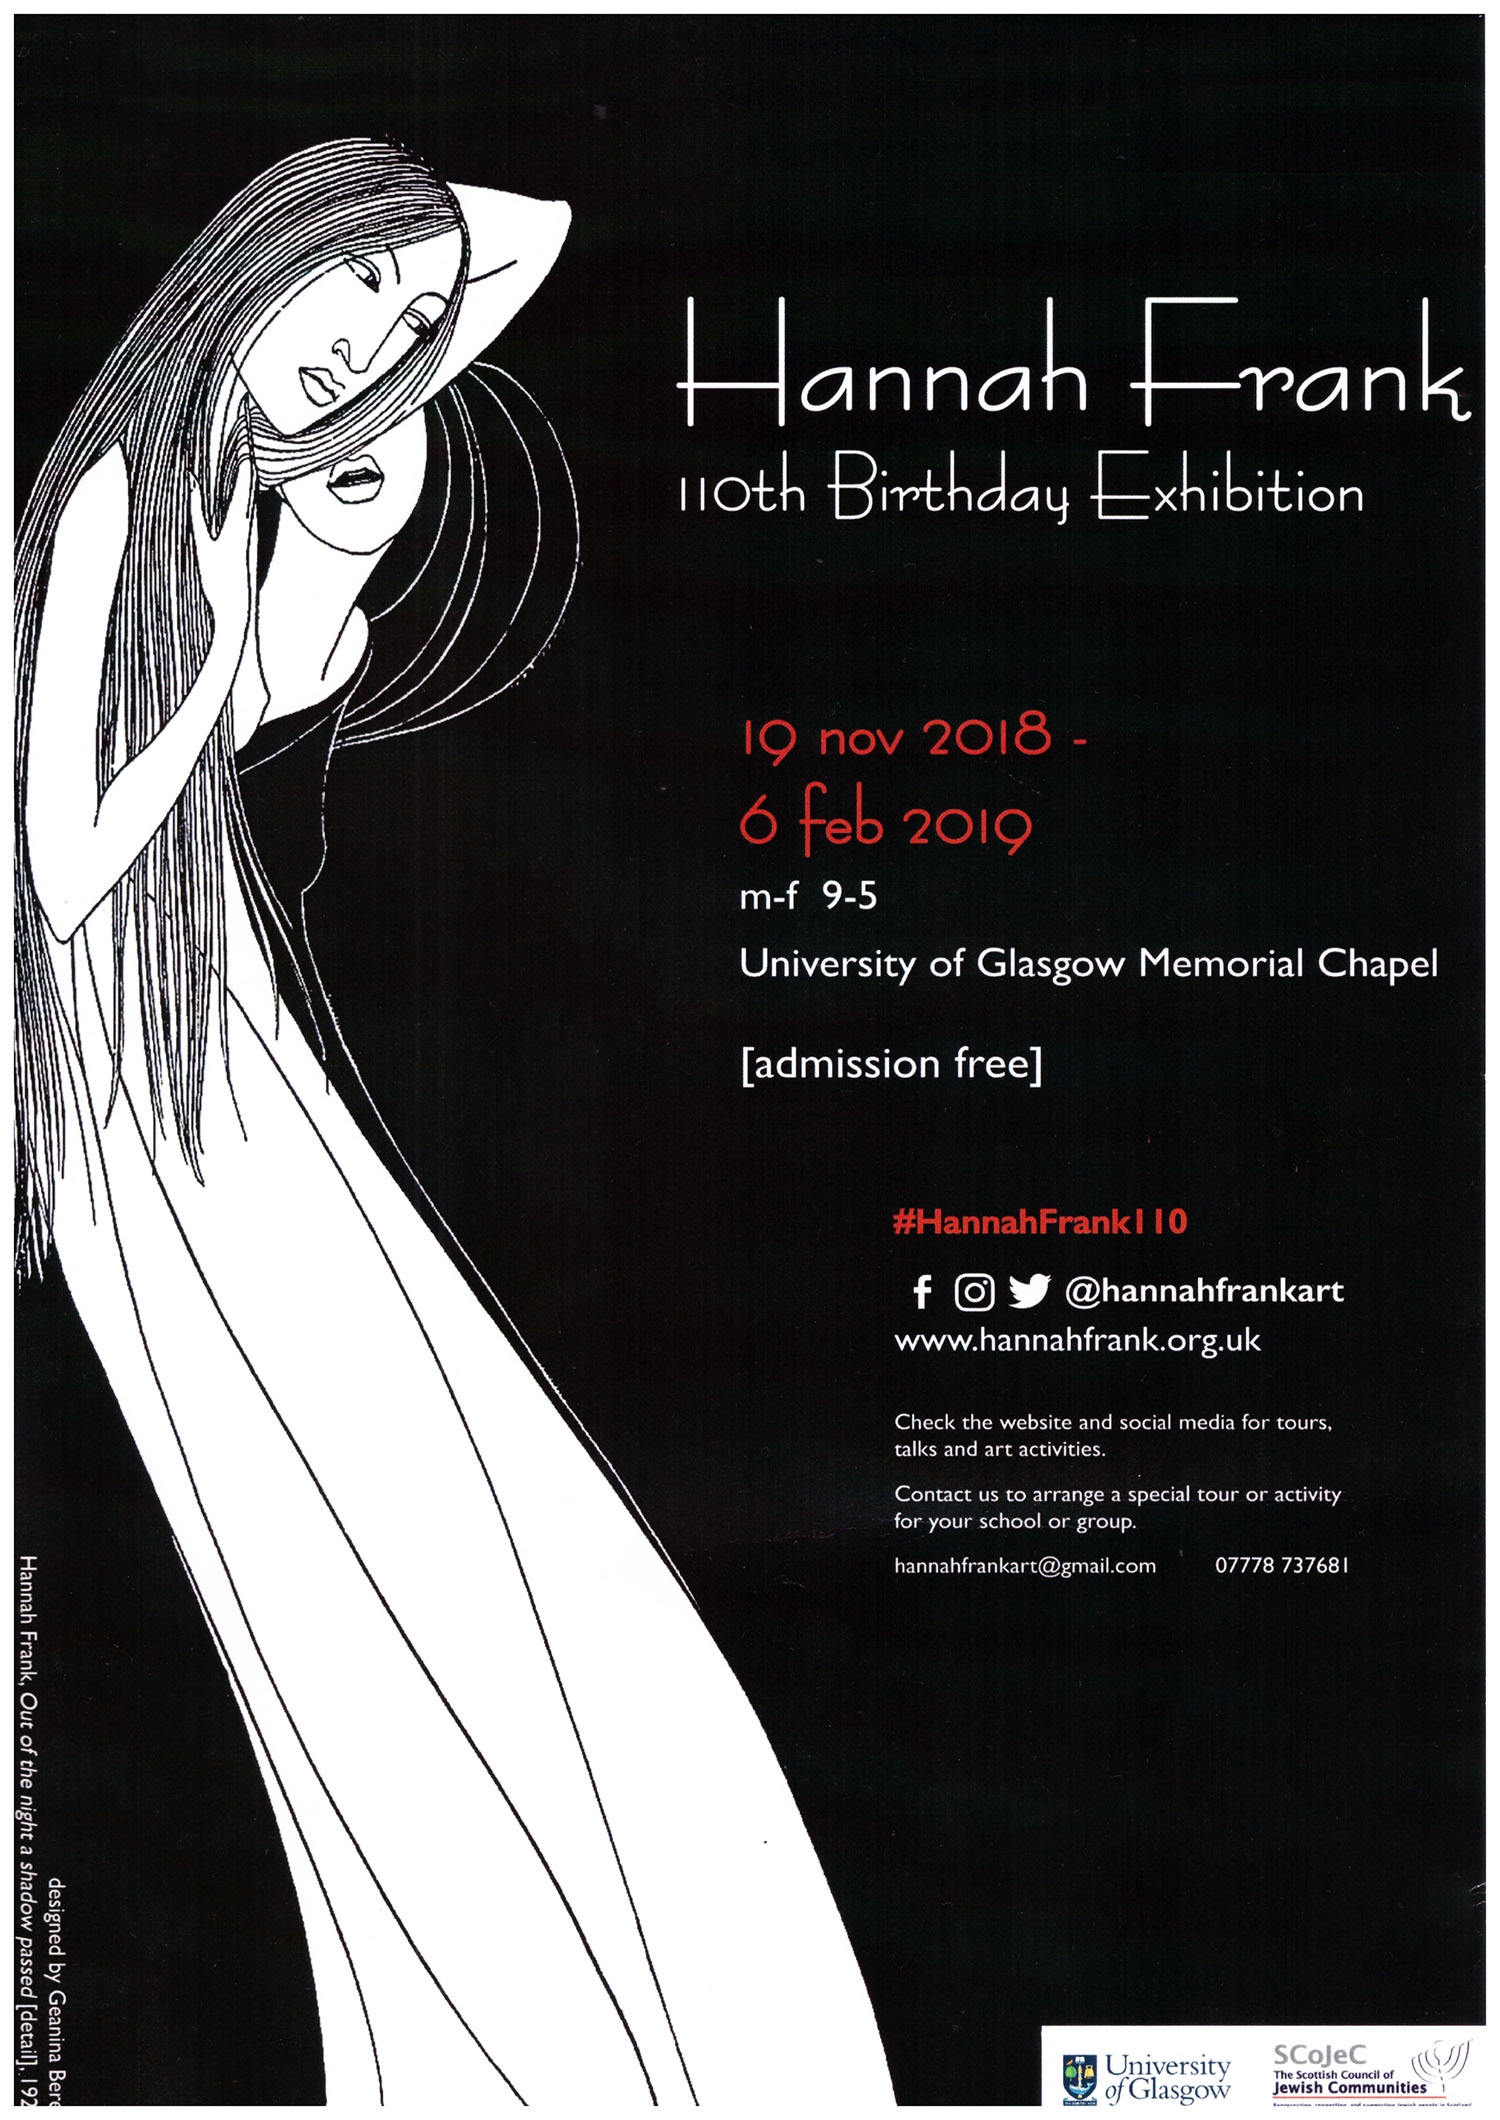 Hannah Frank 110th Birthday Exhibition, Rebecca Johnstone